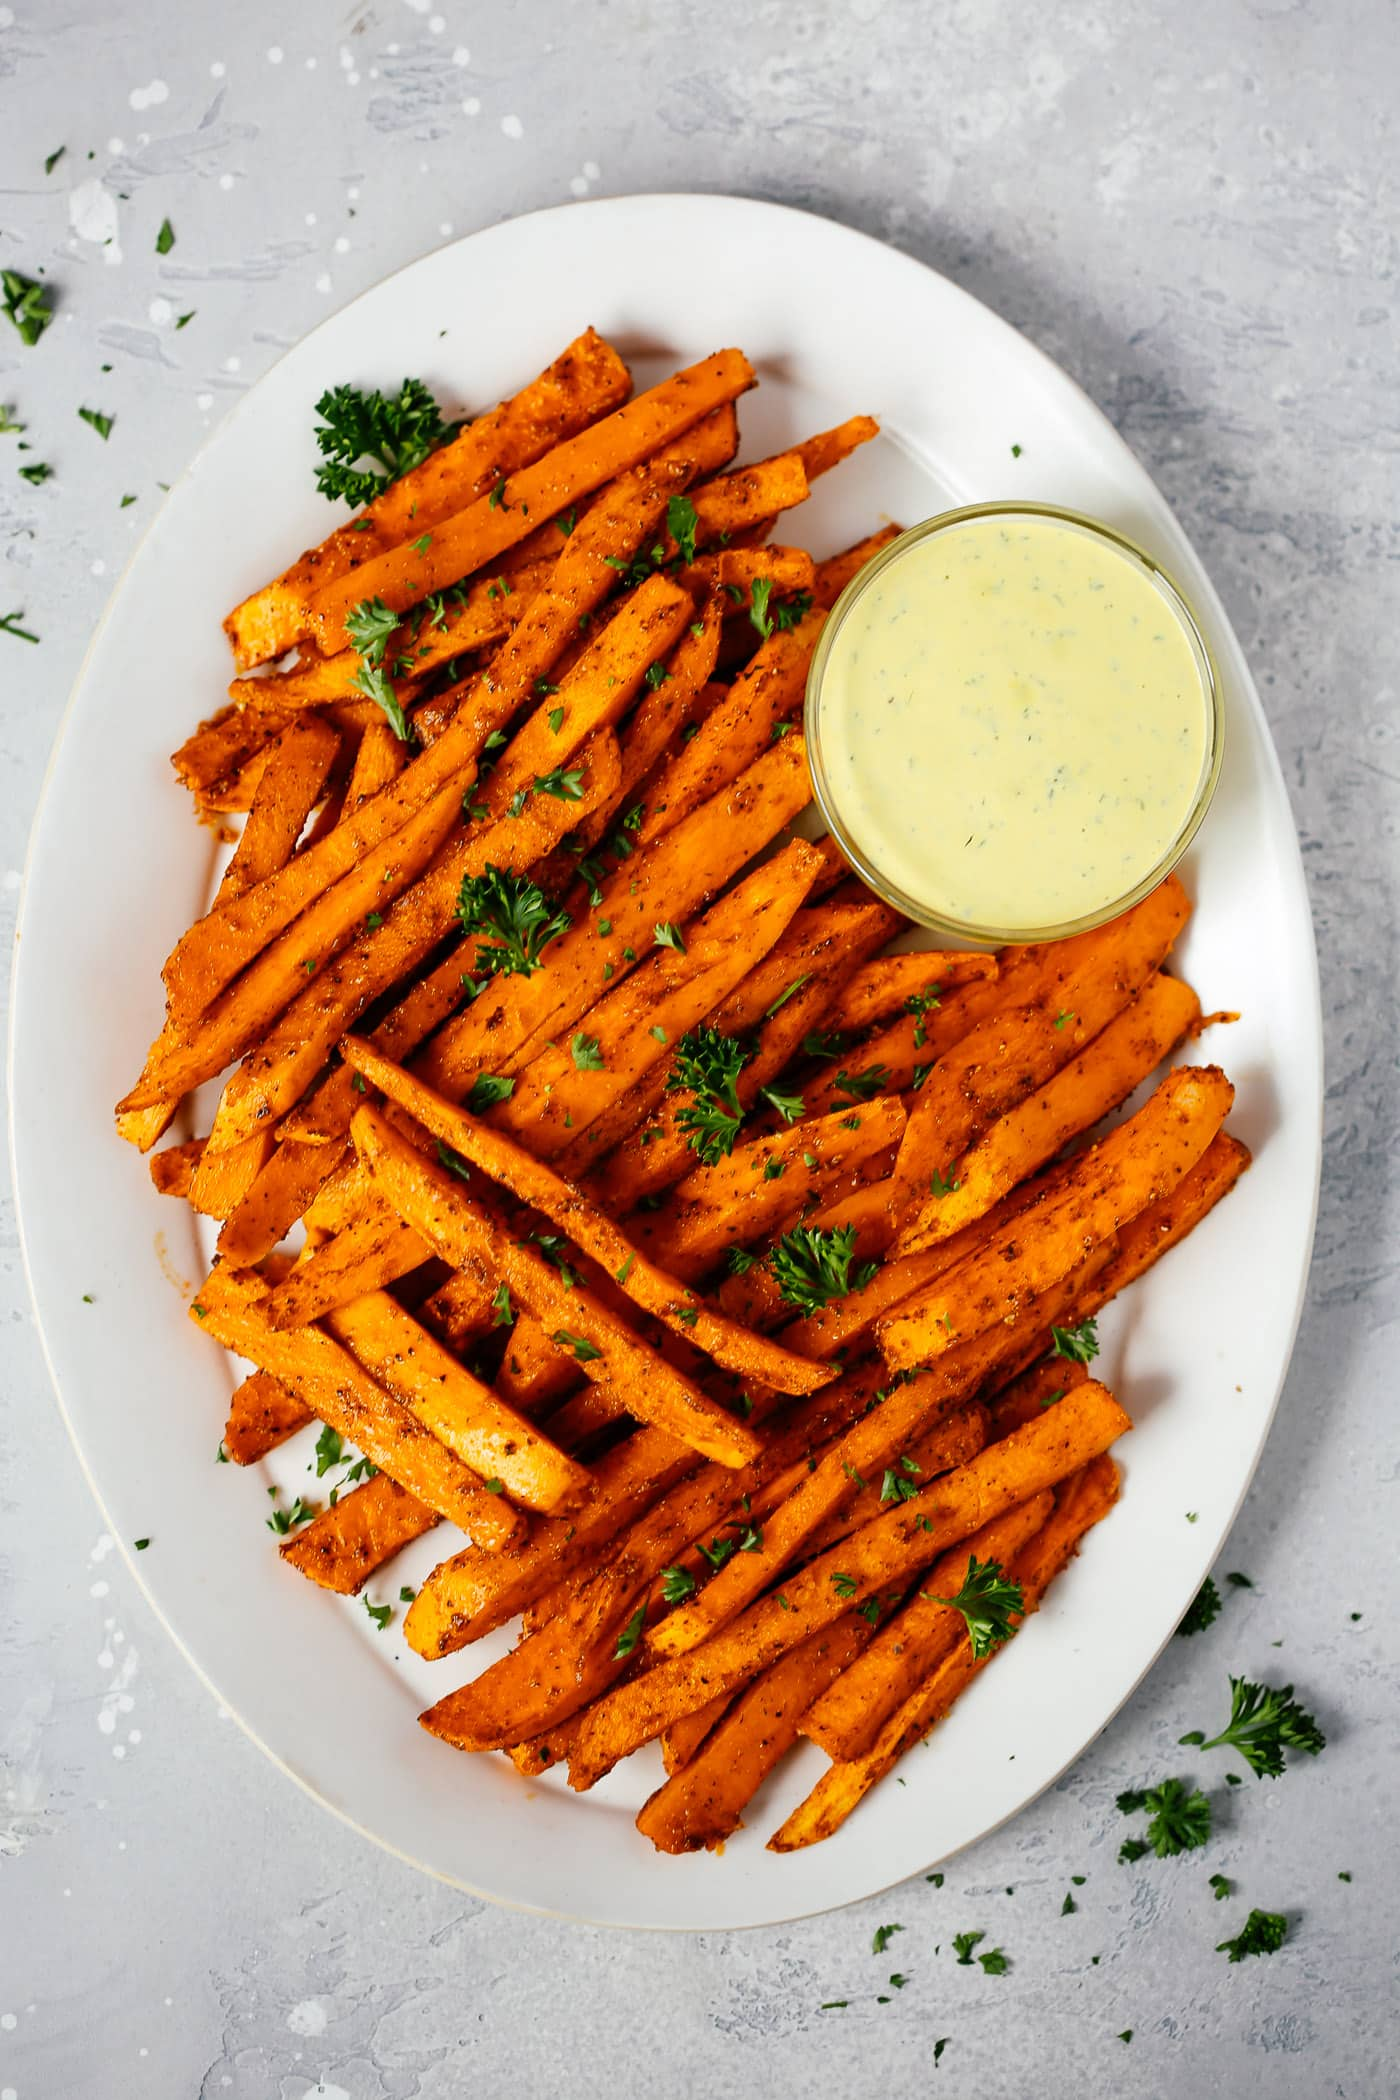 Spicy Baked Sweet Potato Fries Recipe - Primavera Kitchen